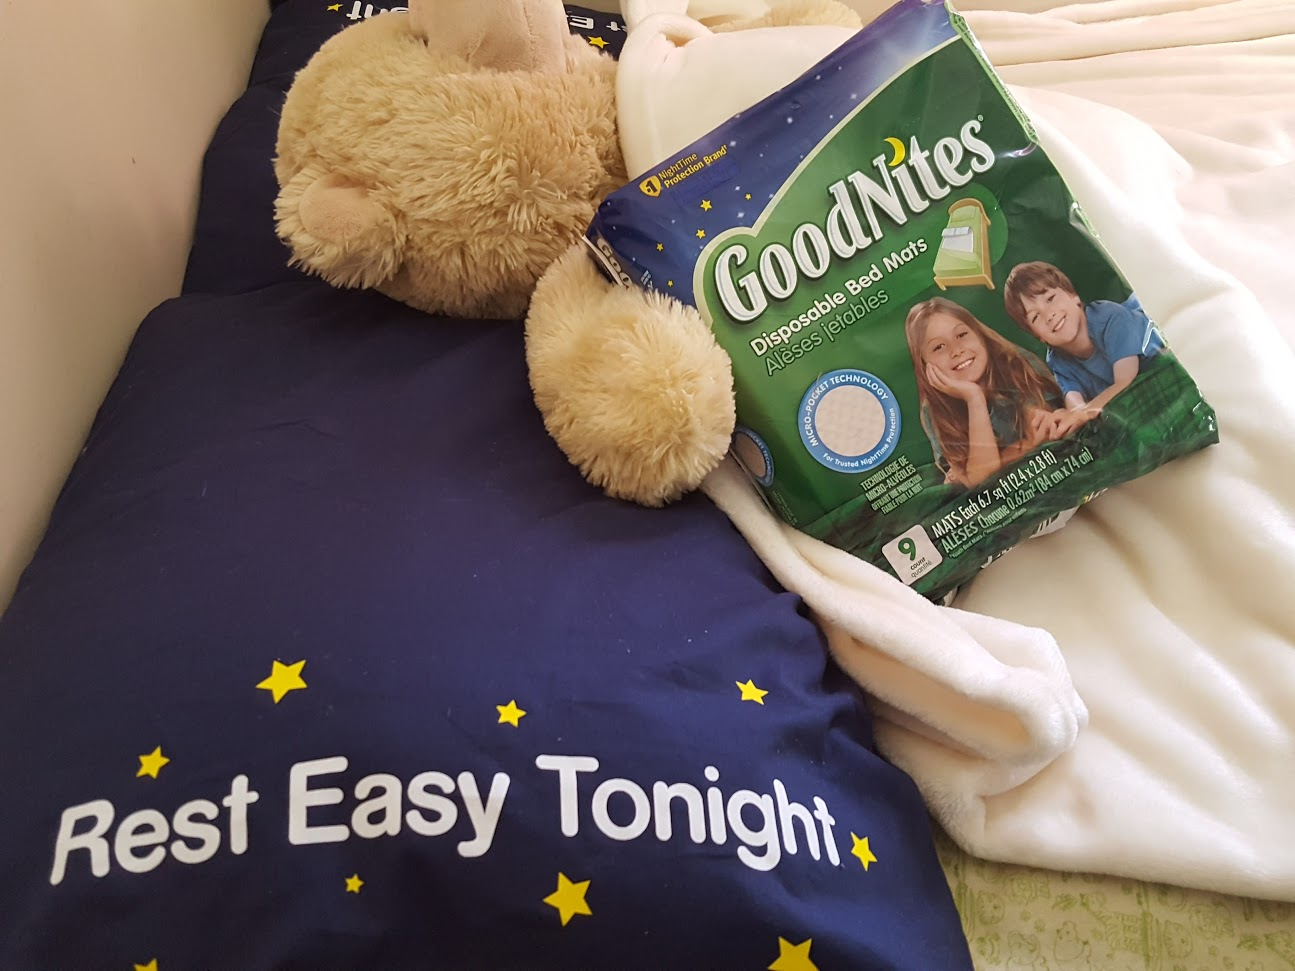 Nighttime Wetting Tips & Tricks from GoodNites